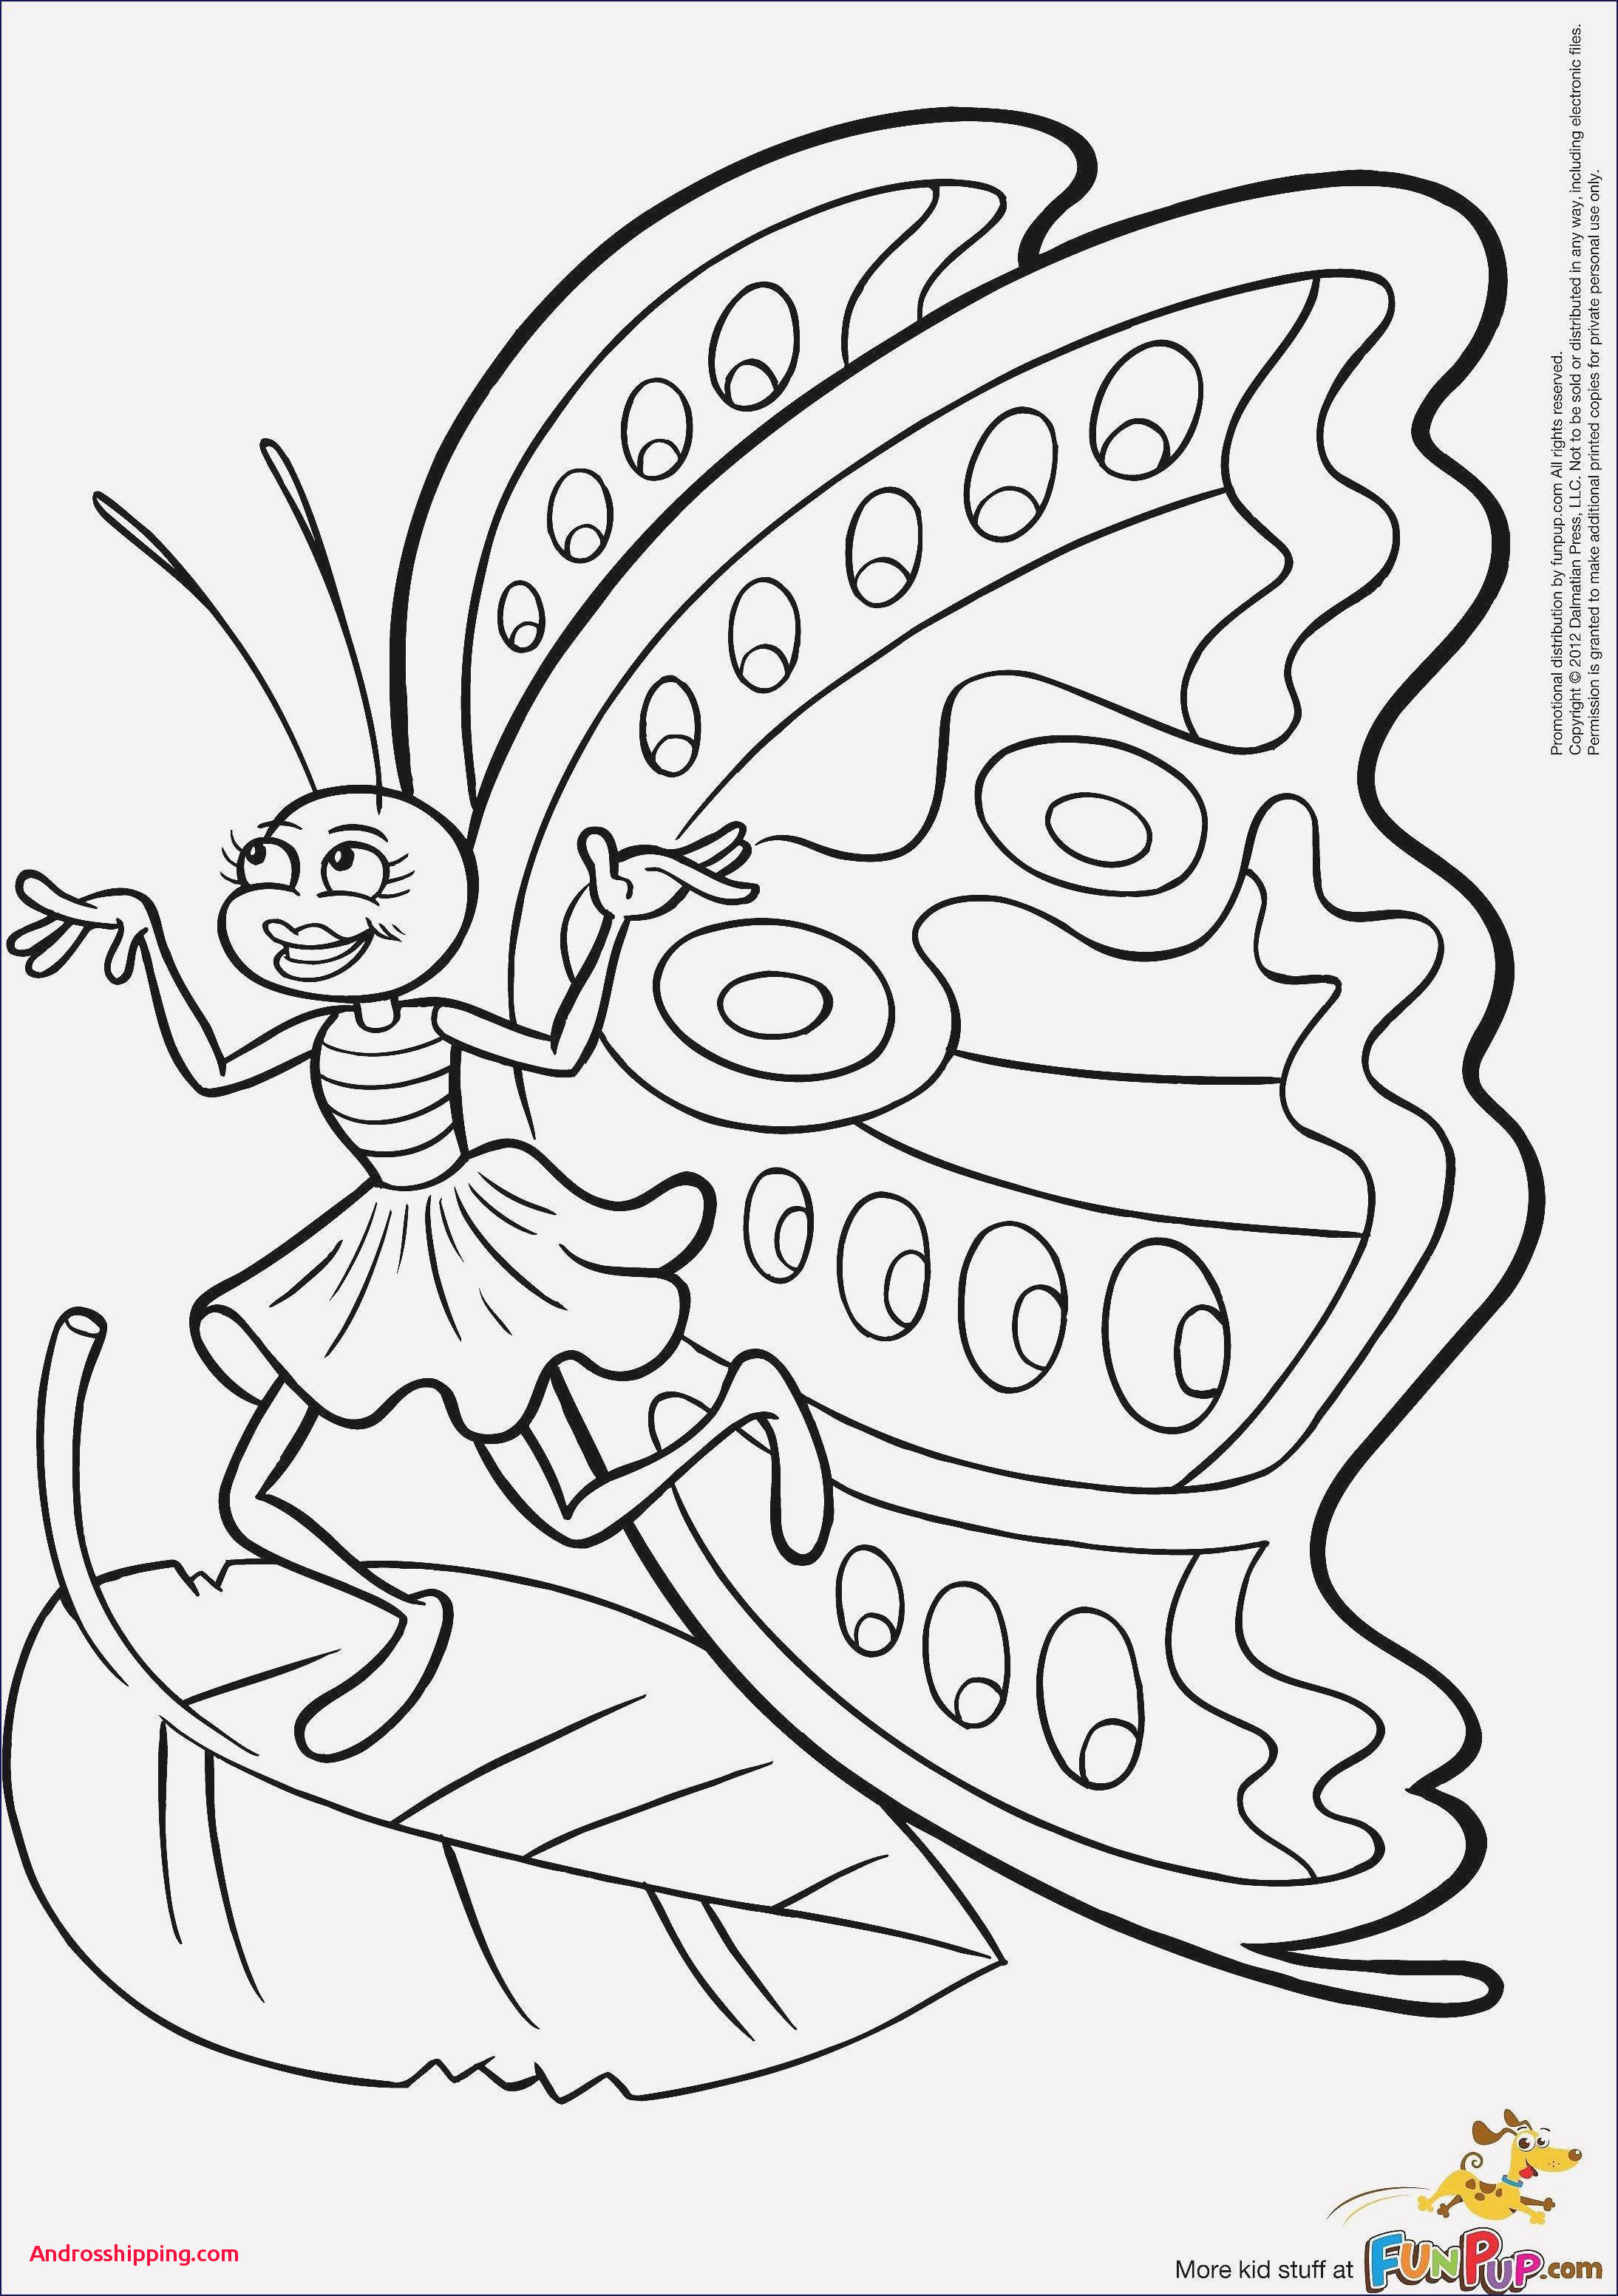 Ausmalbilder Disney Frisch Elegant Disney Coloring Pages Monsters Inc androsshipping Das Bild